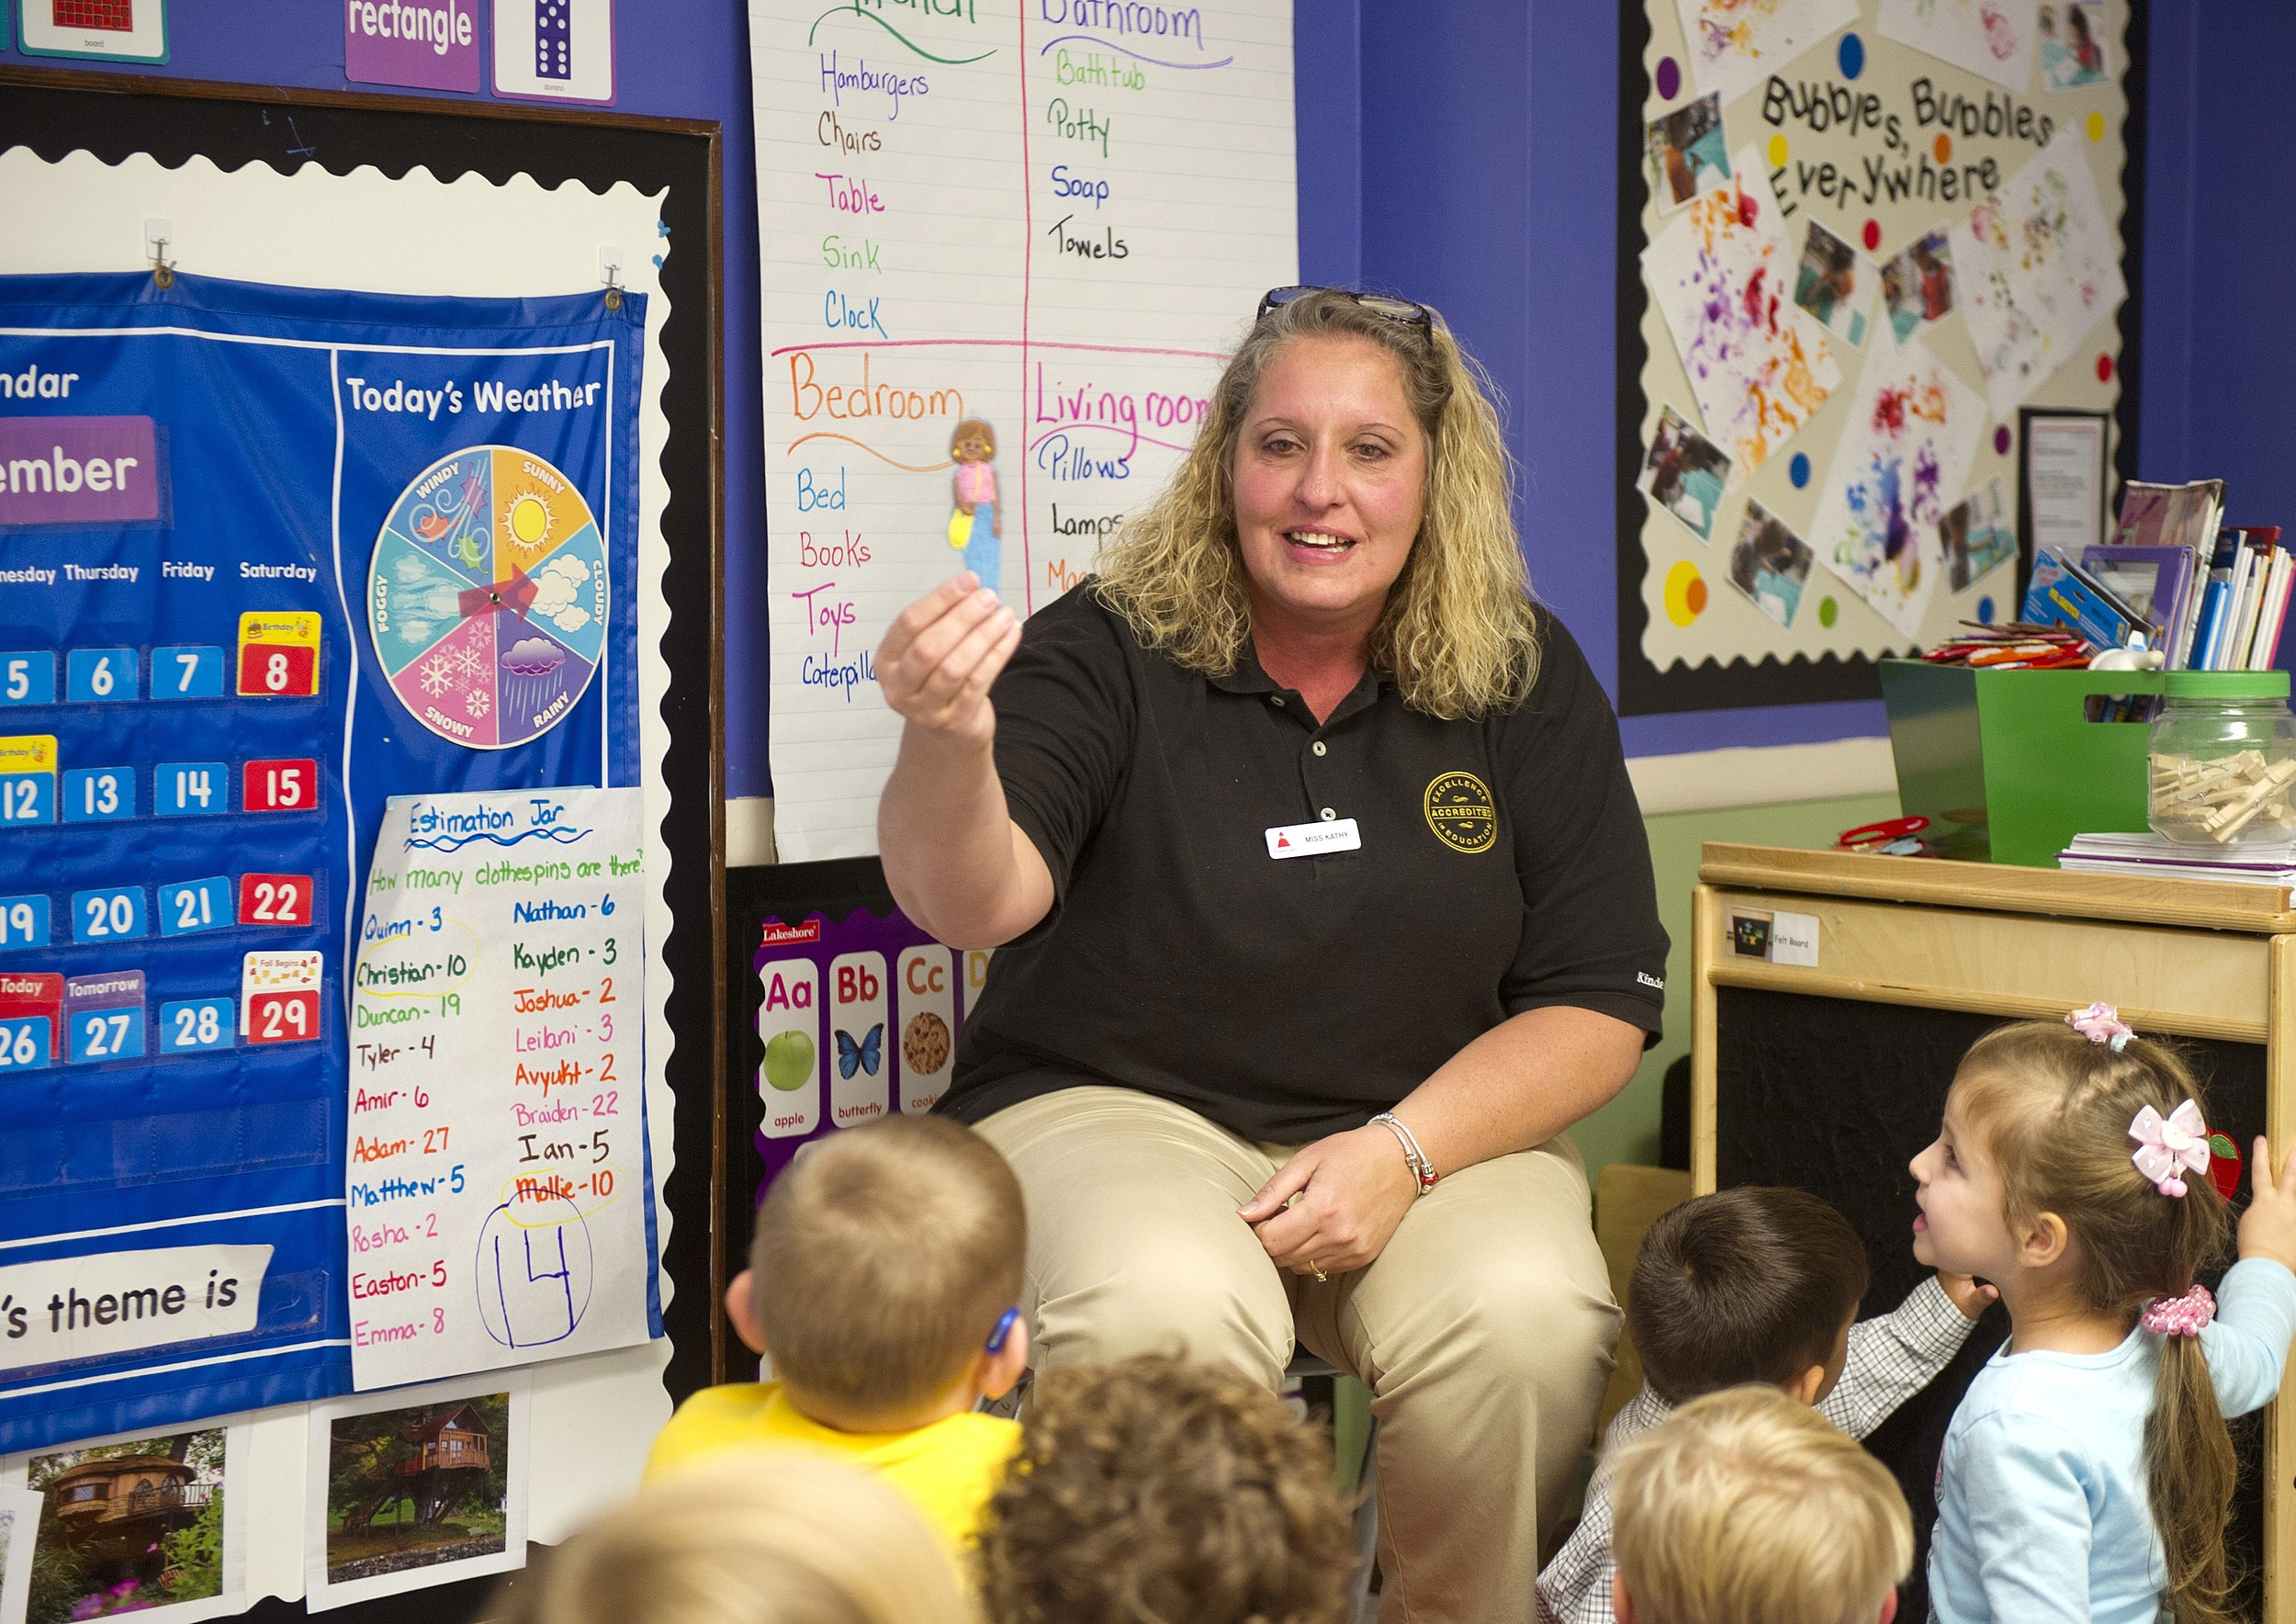 Pittsburgh, PA teacher Is Surprised With A $10,000 Check And Award From Knowledge Universe